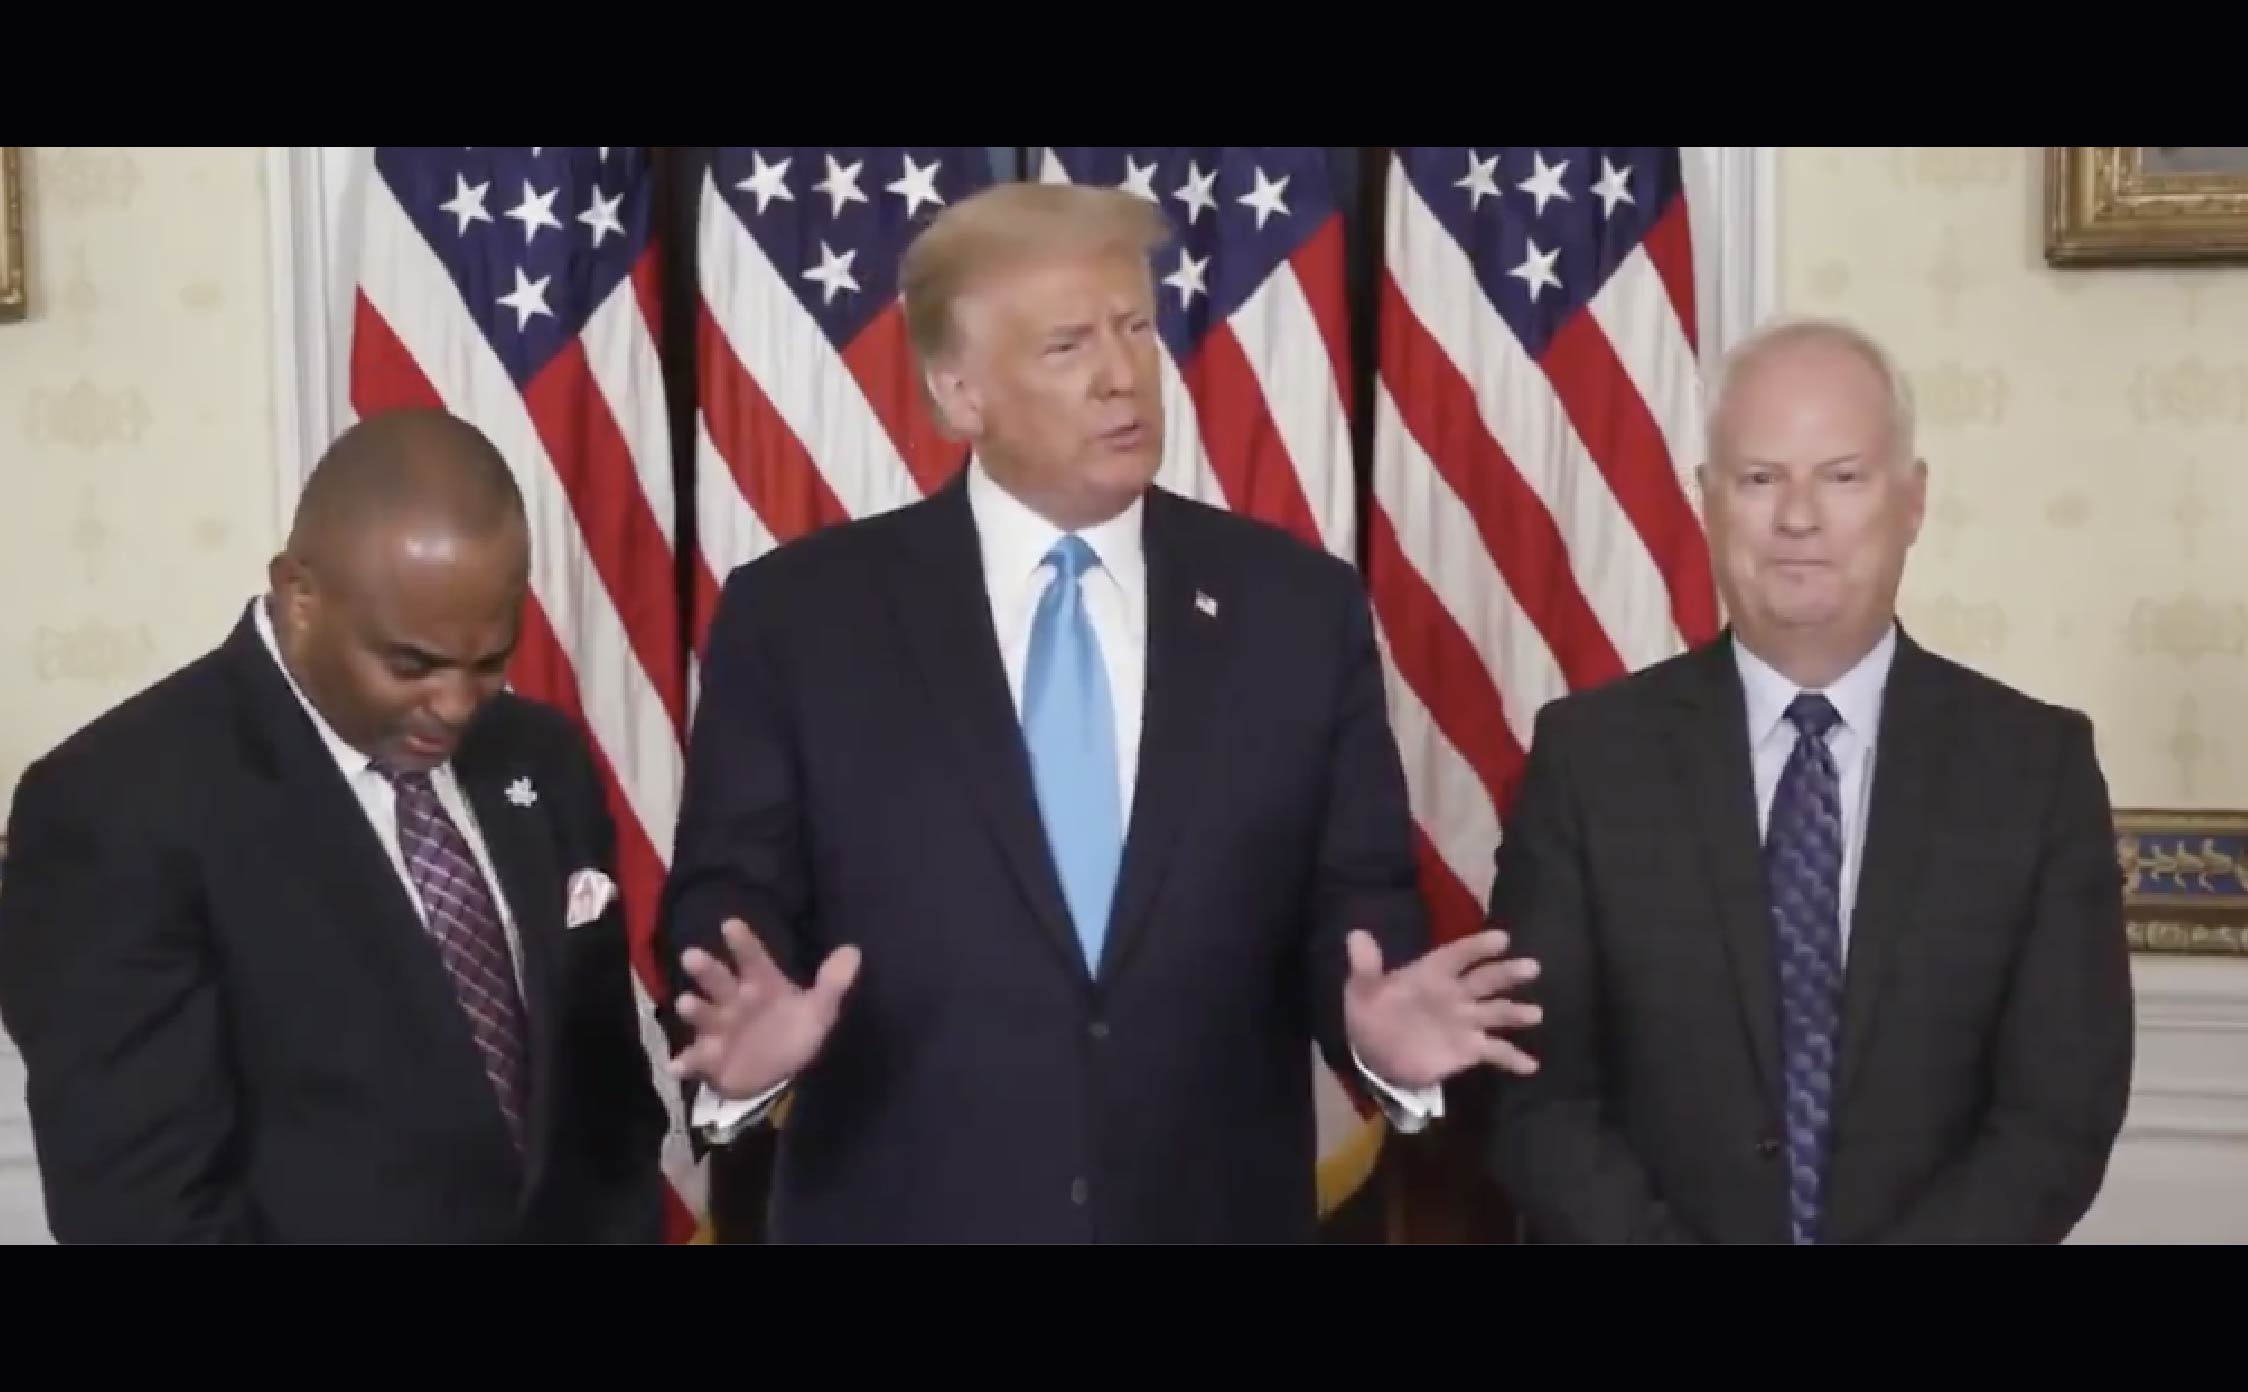 [VIDEO] Trump Brings Ex-Felon to Tears By Surprising Him With a Full Pardon During RNC Convention